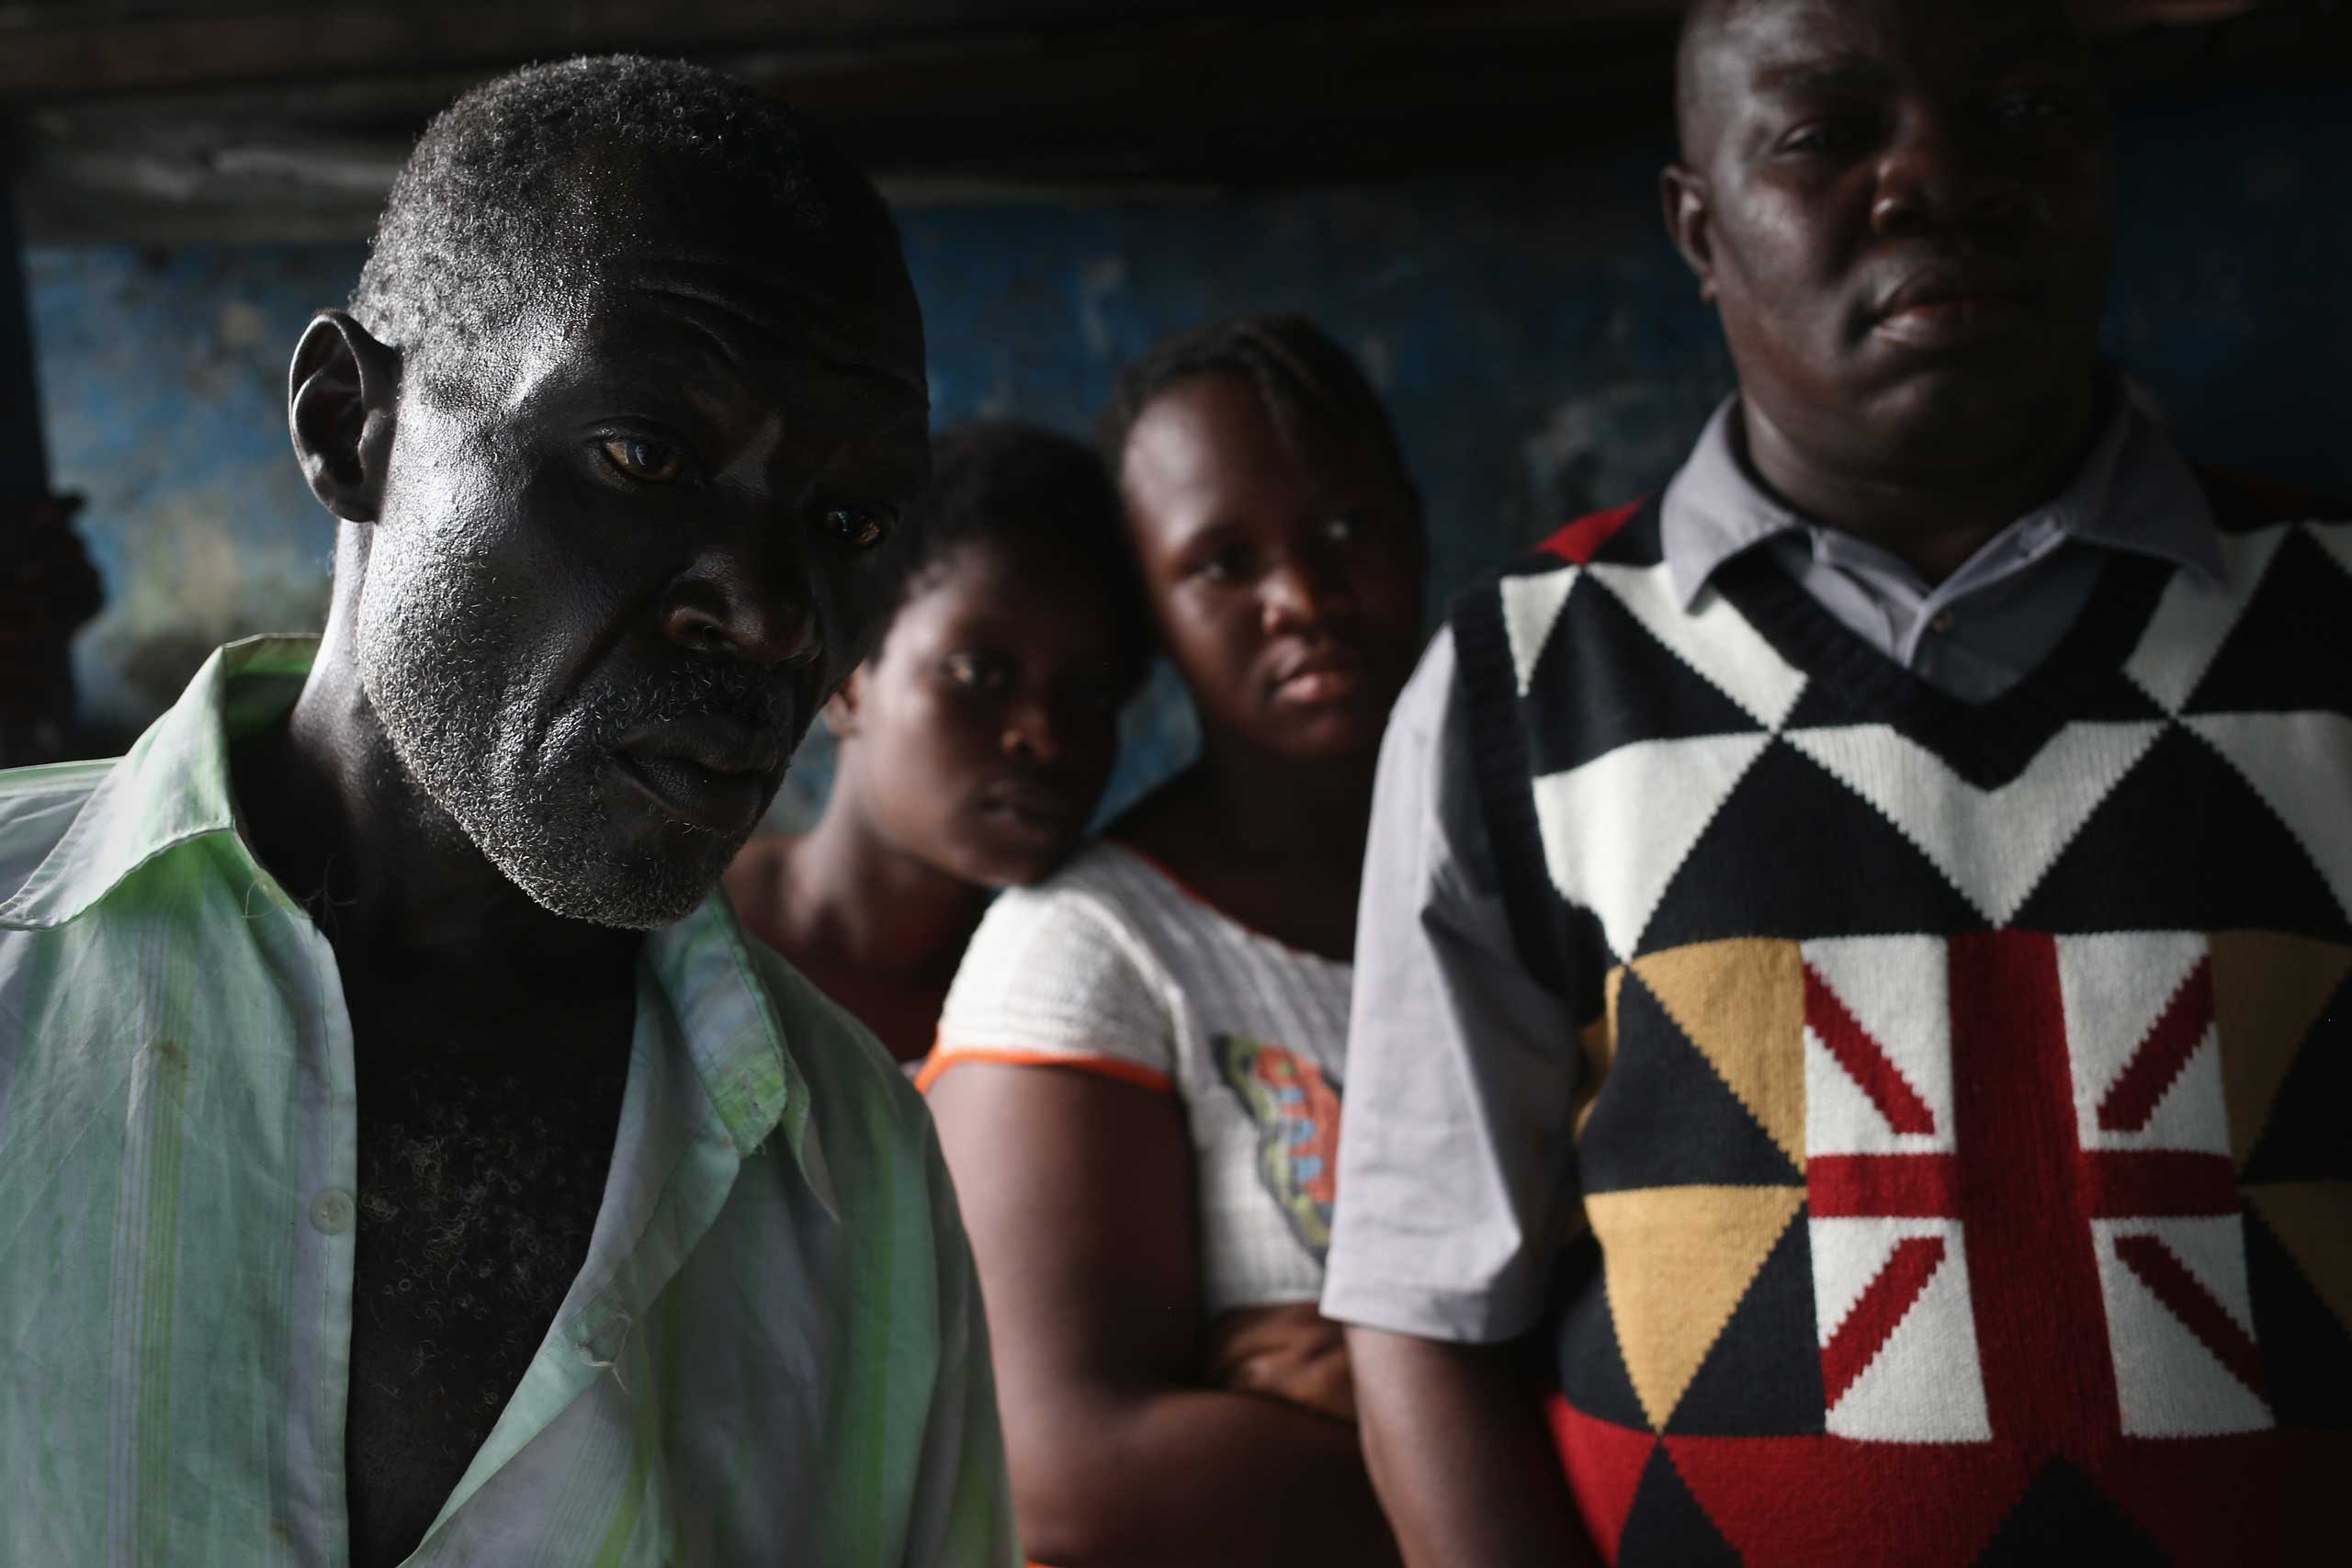 People watch as a son prepares his father to be taken to an Ebola isolation center on Aug. 15, 2014 in Monrovia.